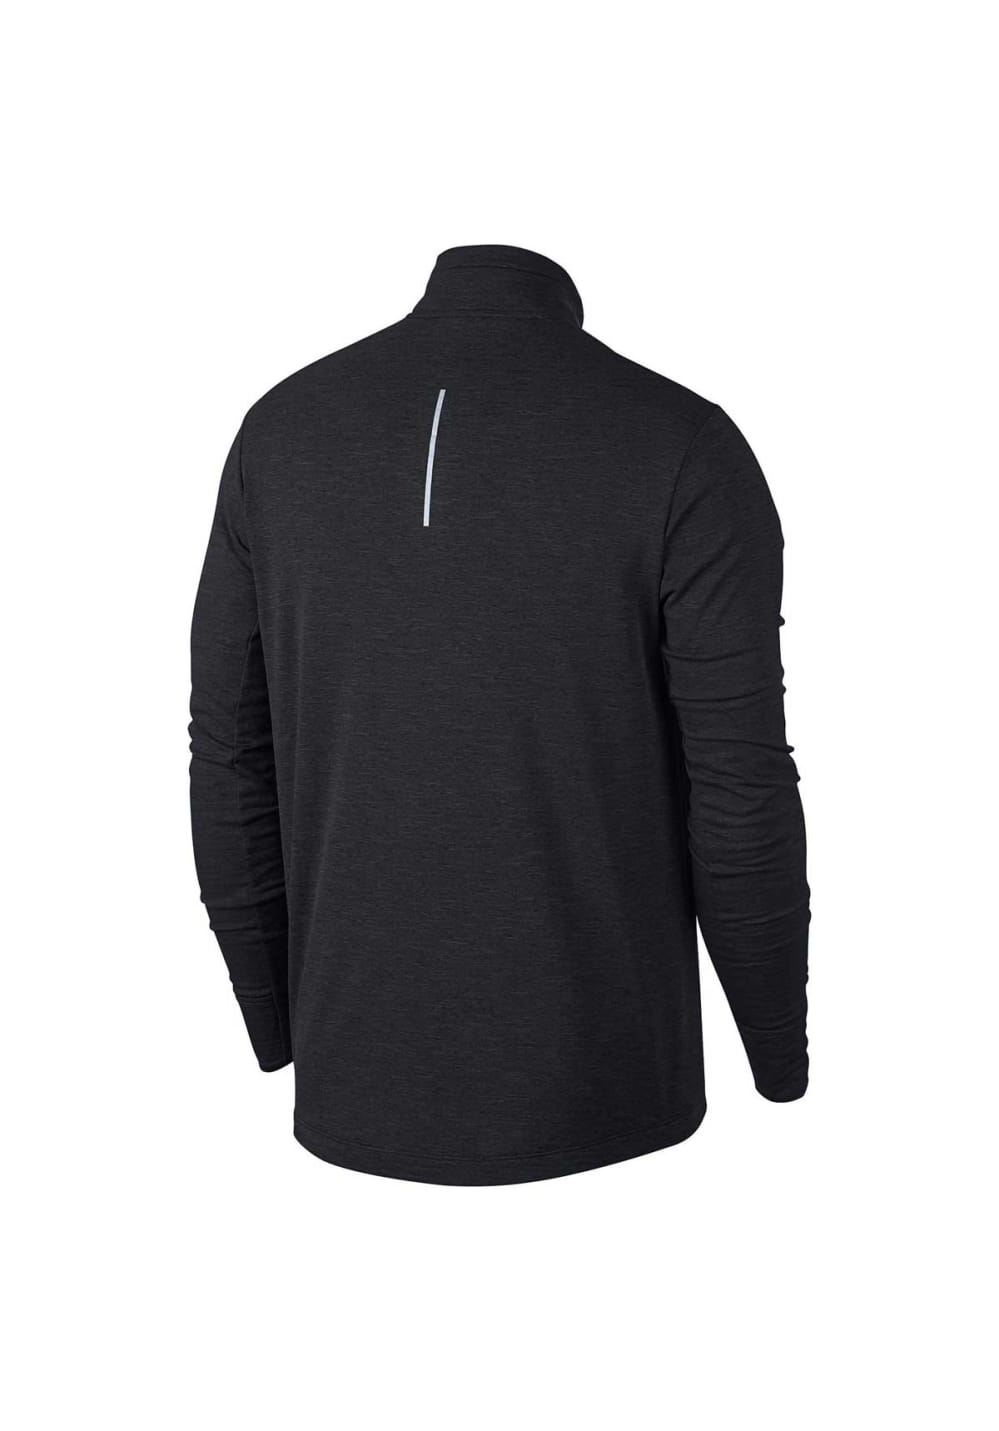 c7d0b2fd3155a ... Nike Sphere Element Laufoberteil 1/2 Zip - Running tops for Men -  Black. Back to Overview. 1; 2. Previous